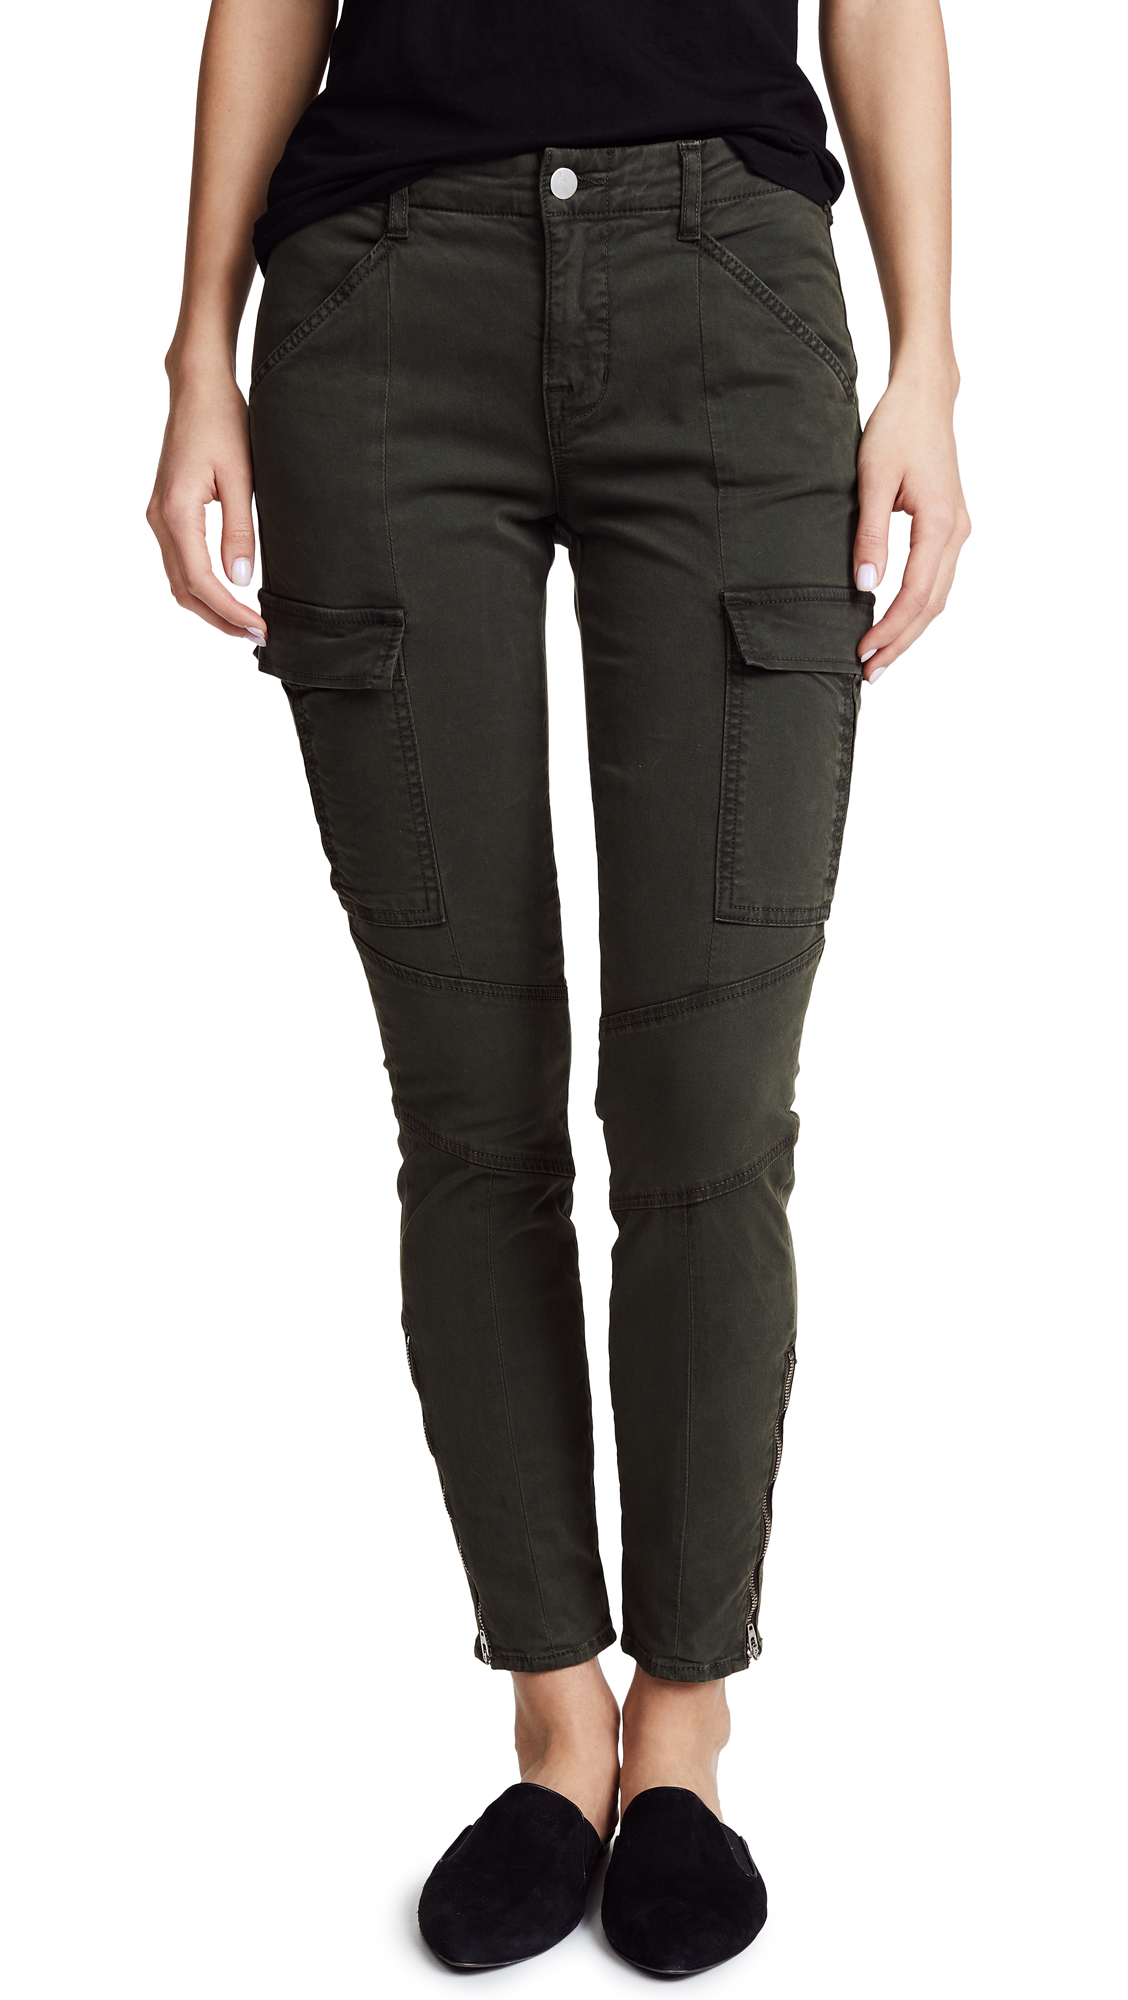 J Brand Houlihan Jeans - Distressed Caledon